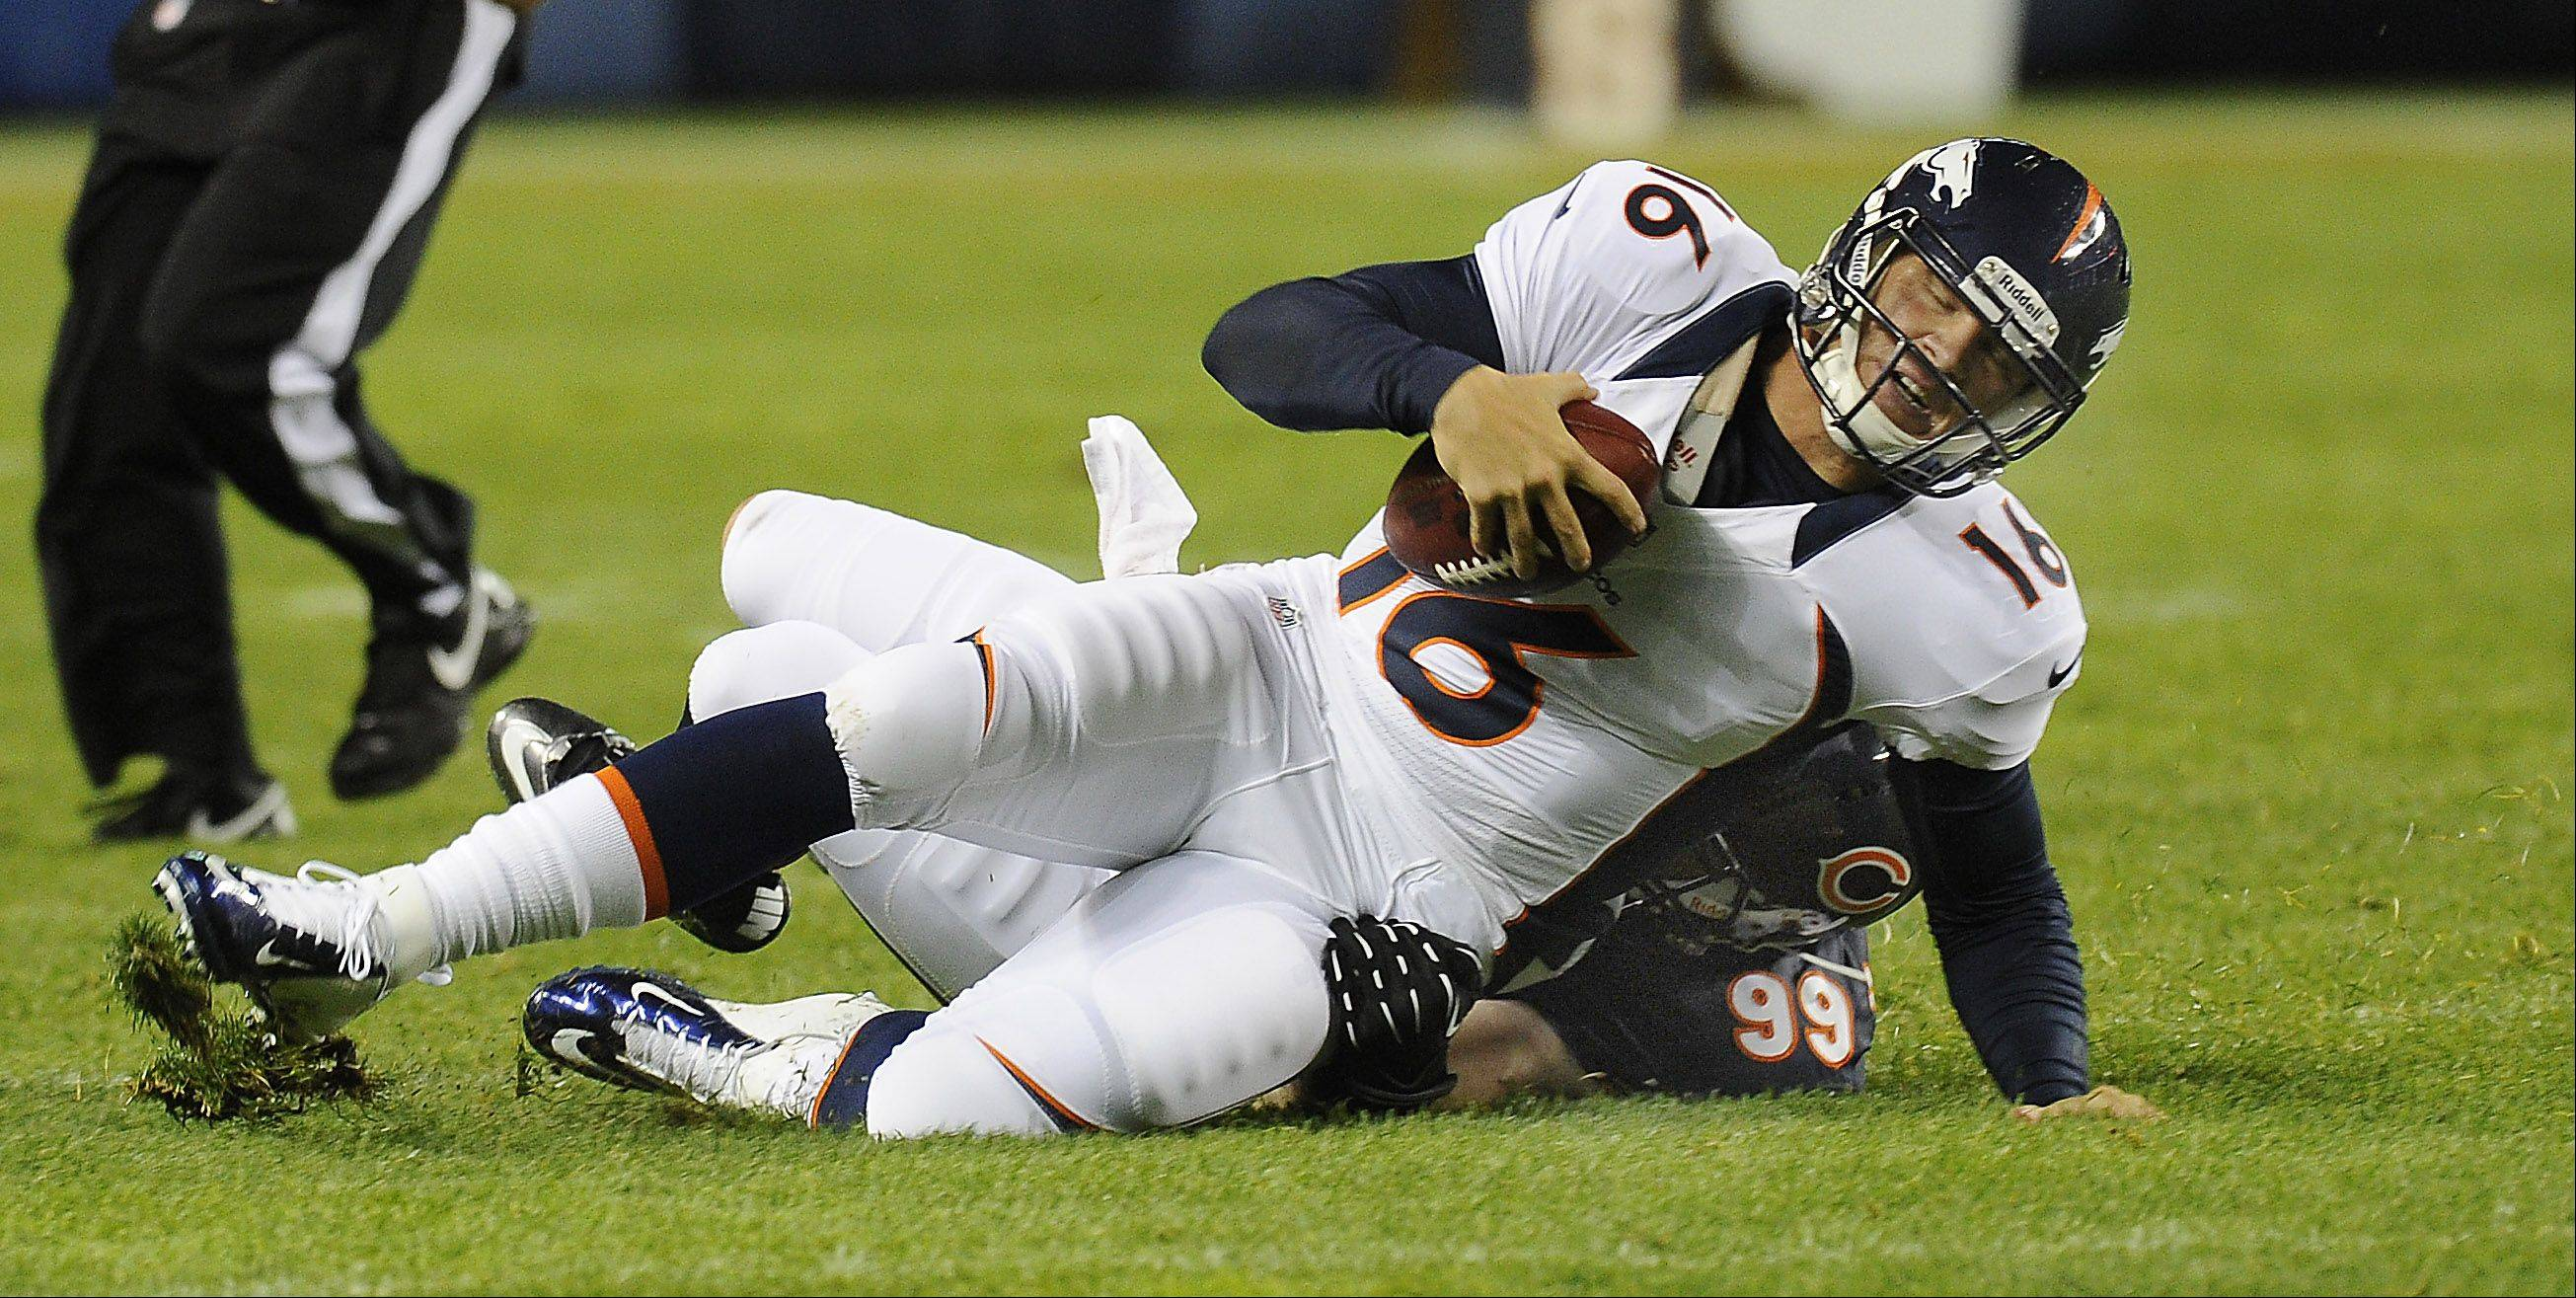 Denver Broncos quarterback Caleb Hanie is sacked by Shea McClellin in the first half.